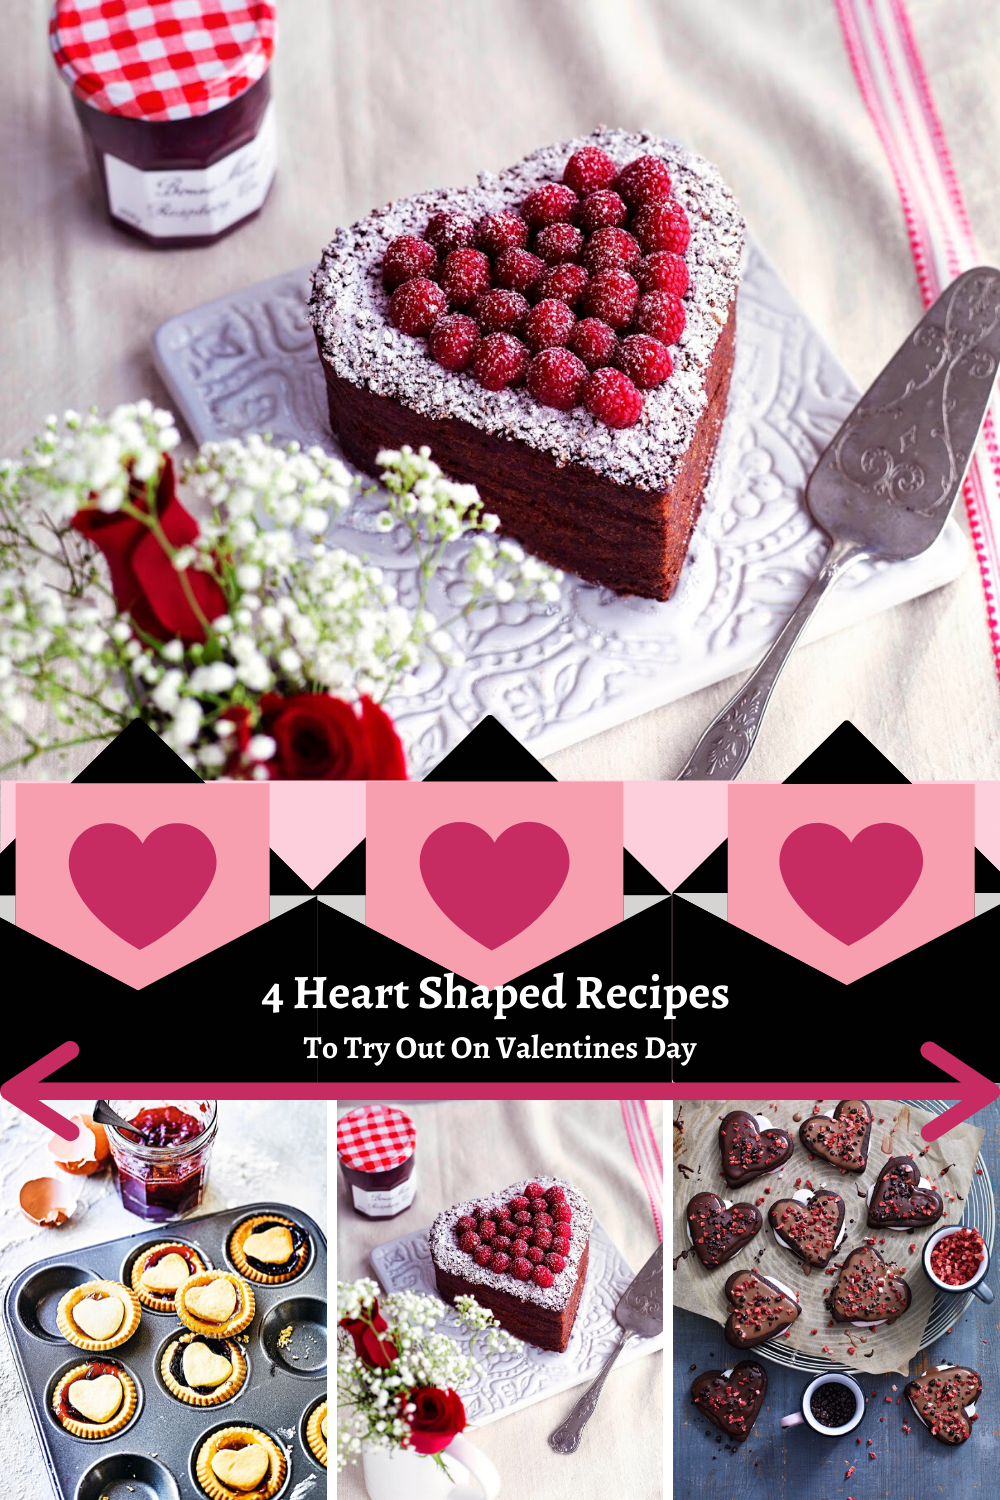 4 Heart Shaped Recipes To Try Out On Valentines Day